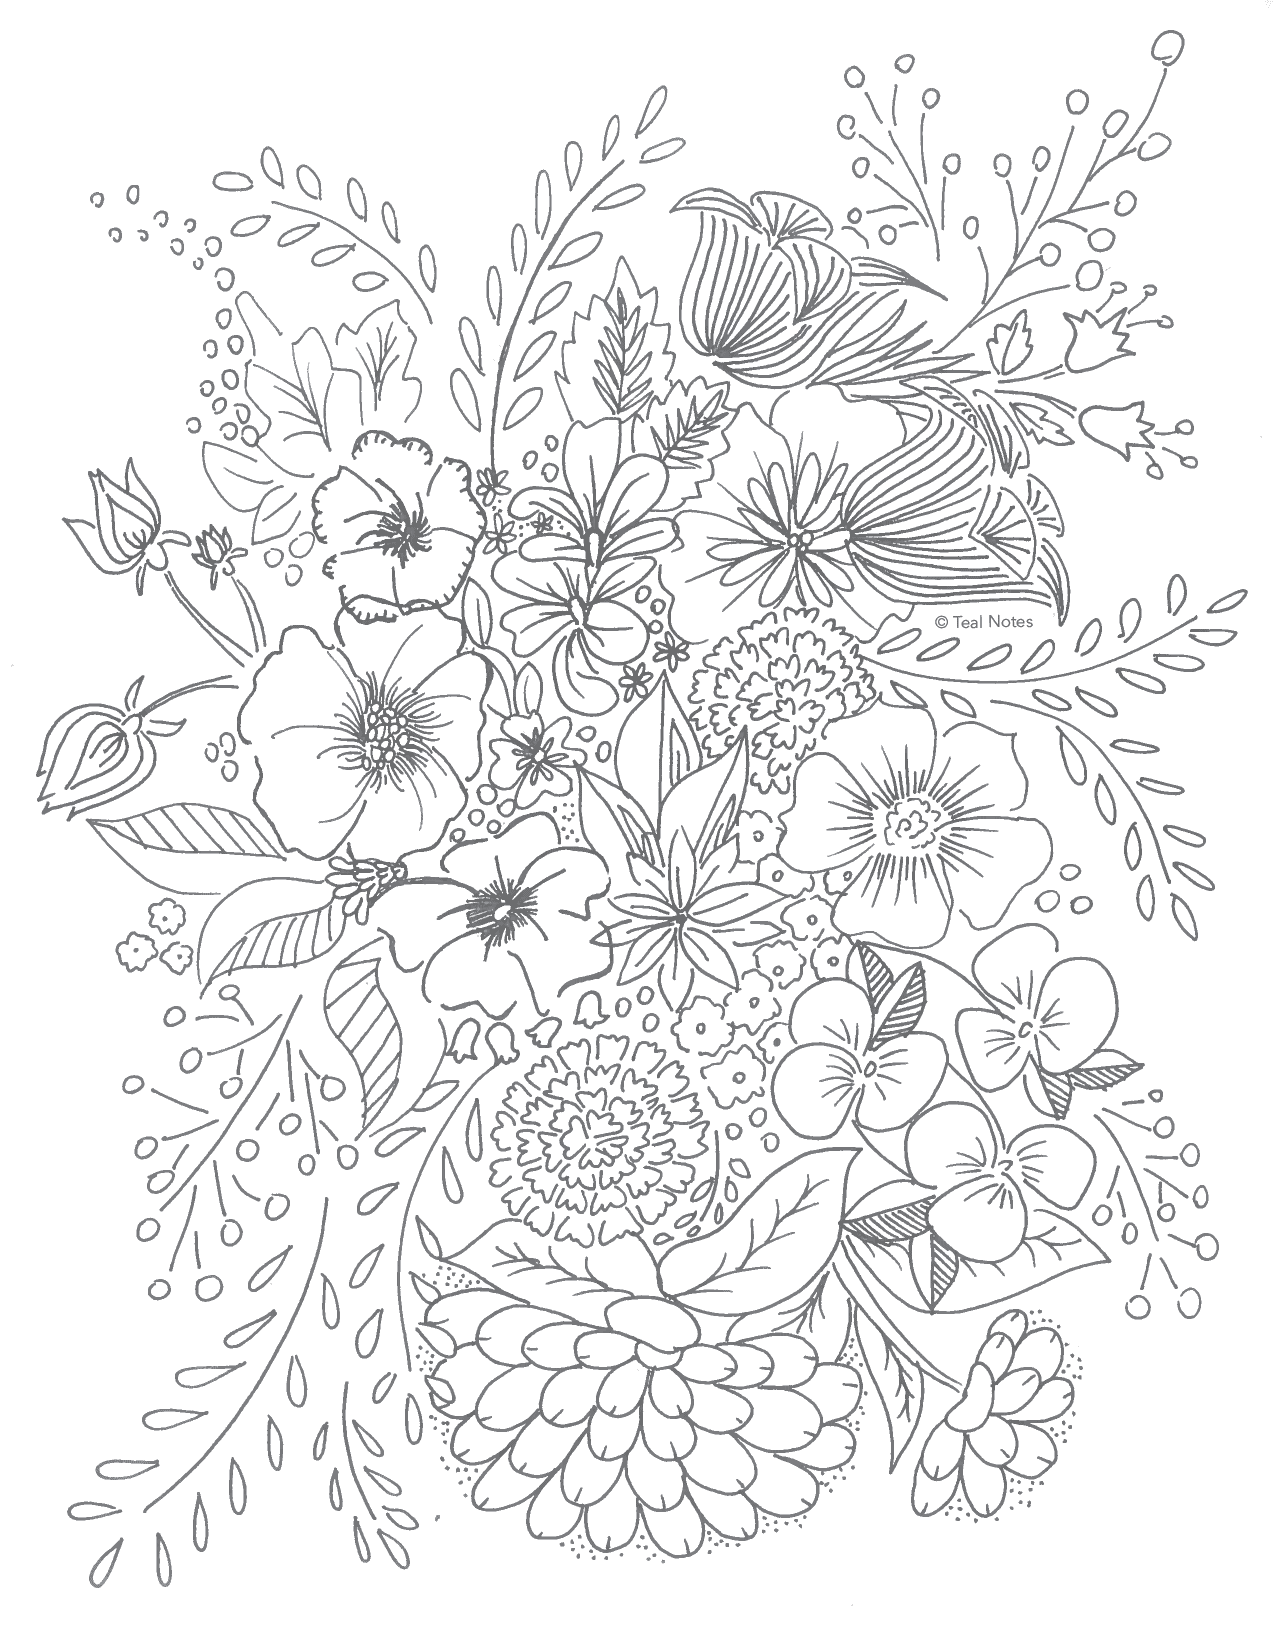 pintable coloring pages - photo#48